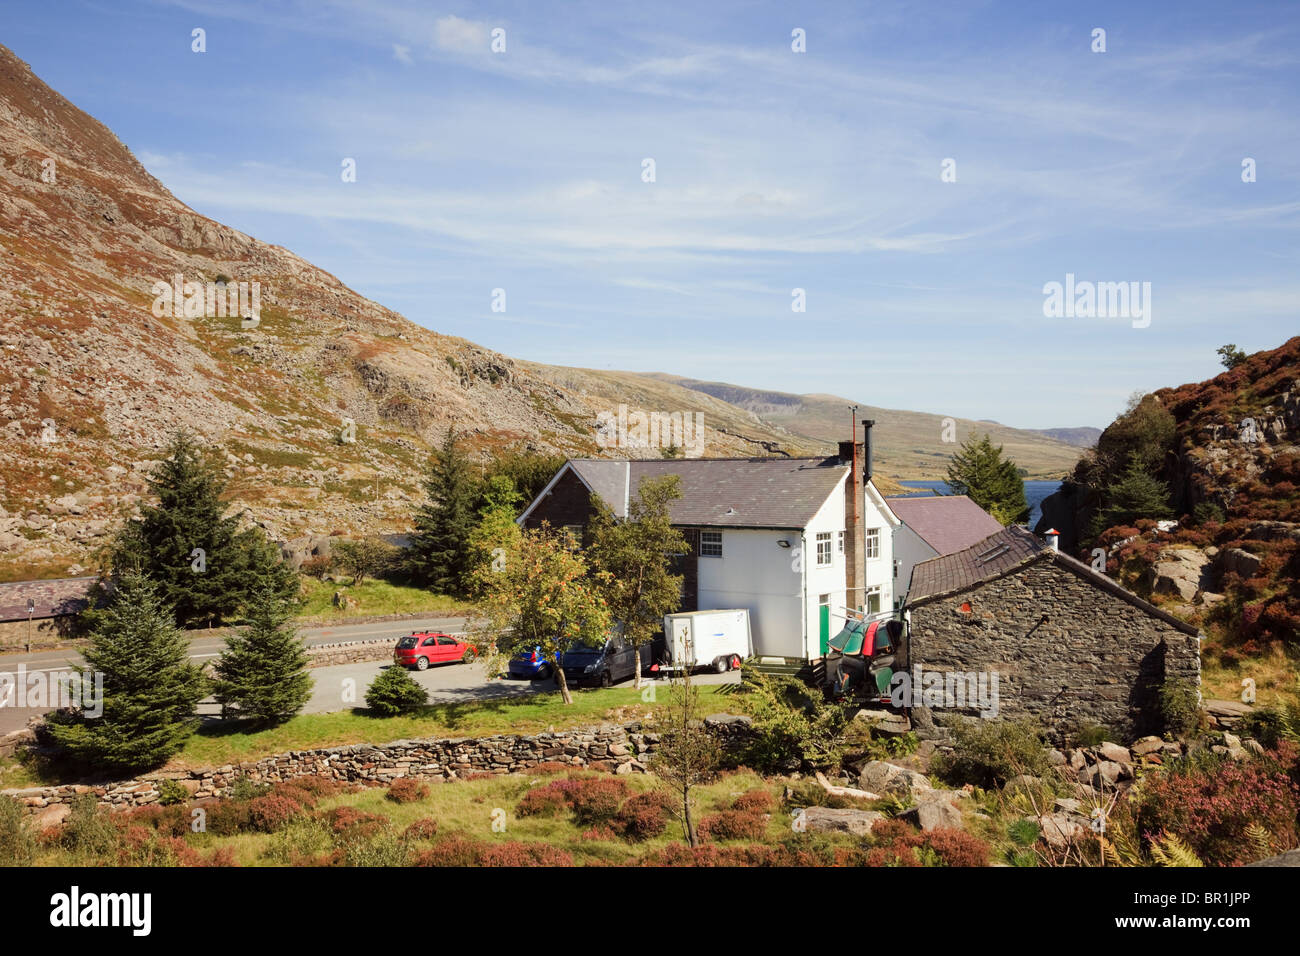 Ogwen Cottage outdoor pursuits centre. Ogwen Valley Gwynedd Snowdonia National Park North Wales UK Britain. - Stock Image